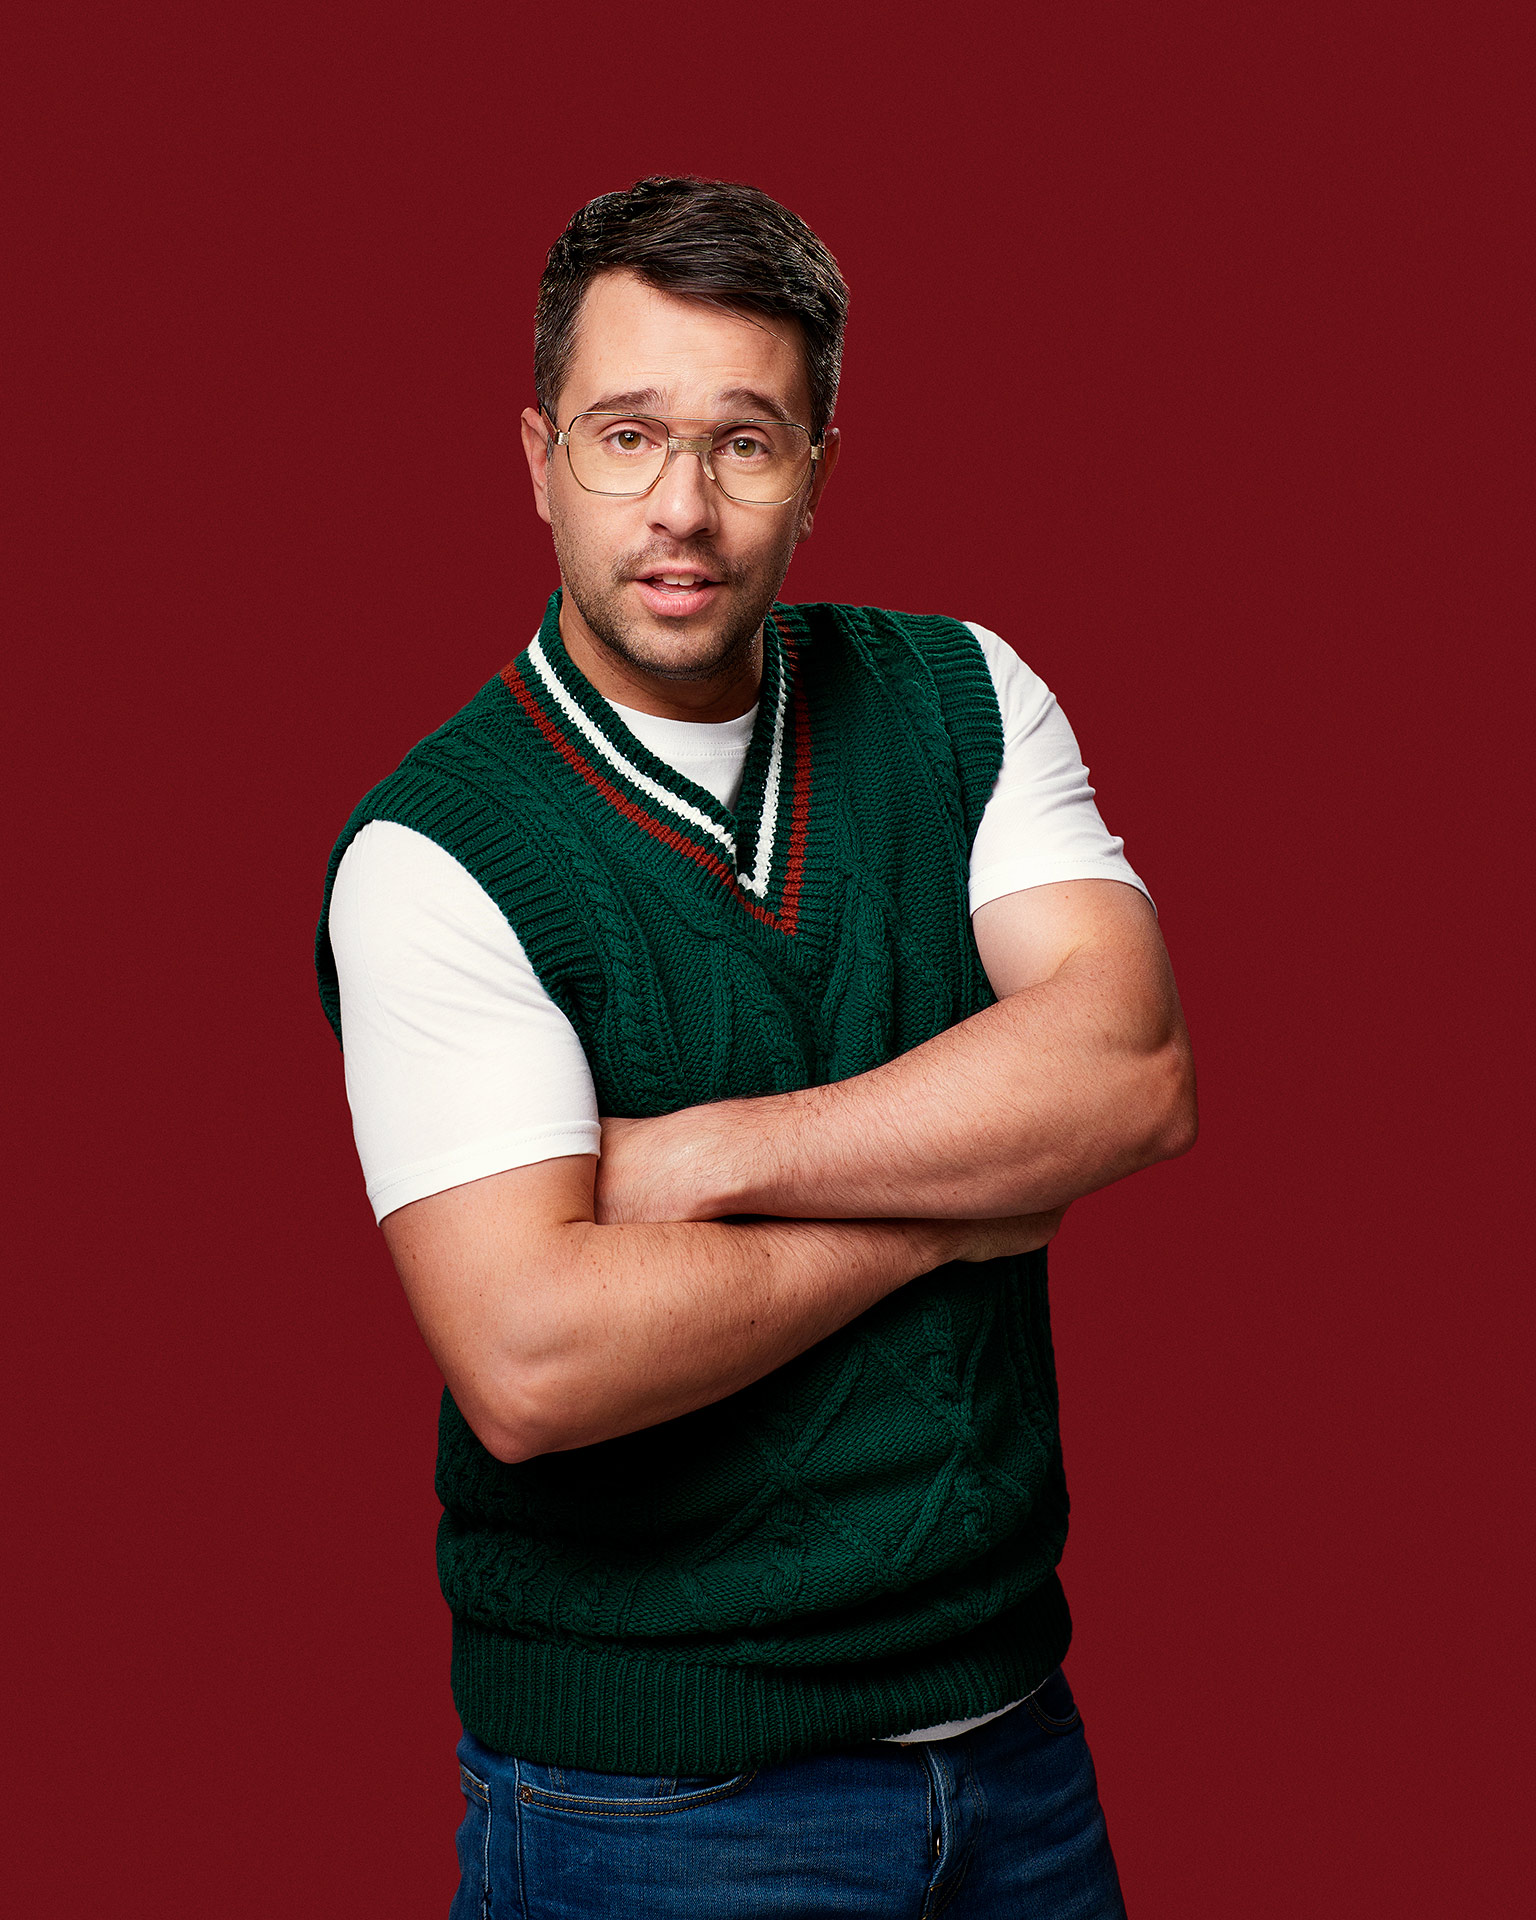 picture of humorist Alexandre Barrette dressed awkwardly in short sleeved white shirt and forest green armless sweater red background for show semi-croquant by Jocelyn Michel